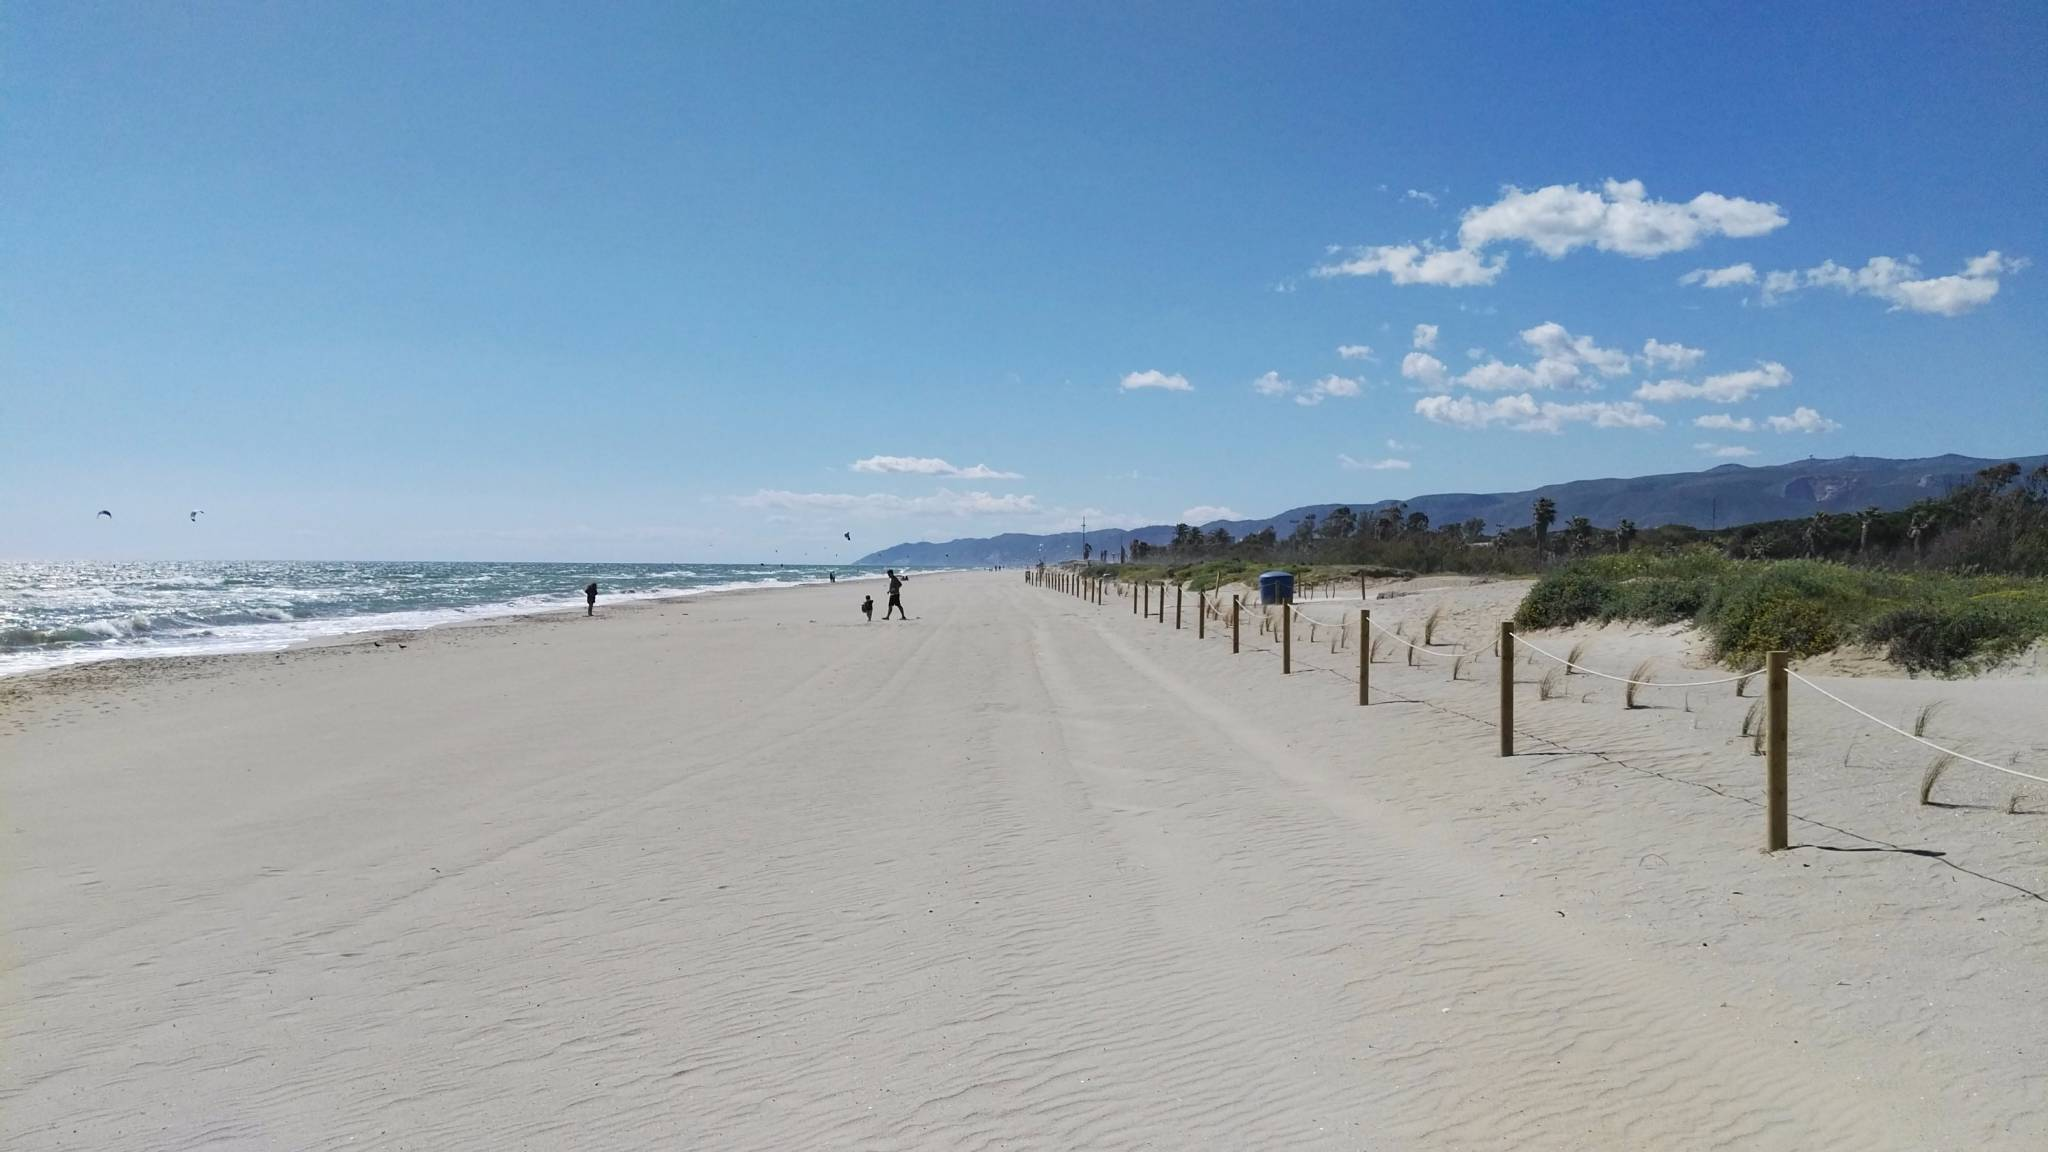 Gavà Mar beach, south of Barcelona, where house prices rose the most on the Spanish coast in Q1